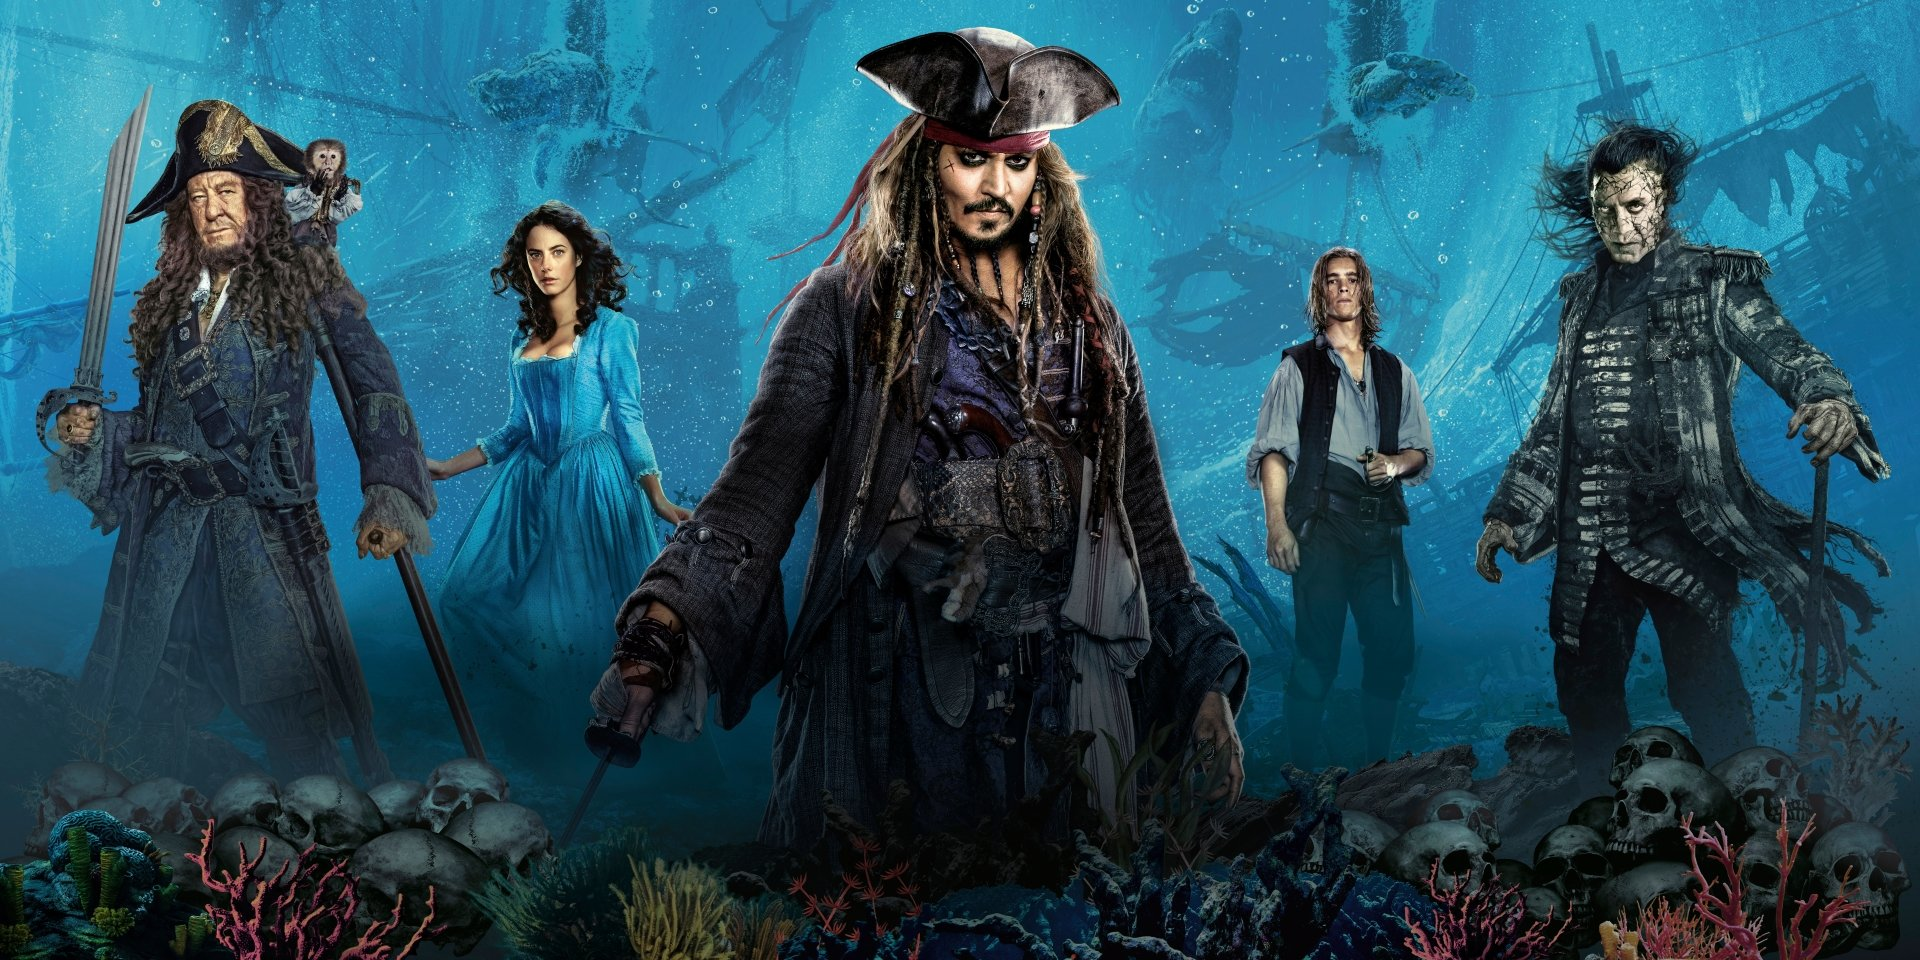 Movie - Pirates Of The Caribbean: Dead Men Tell No Tales  Jack Sparrow Johnny Depp Carina Smyth Kaya Scodelario Geoffrey Rush Hector Barbossa Javier Bardem Captain Salazar Brenton Thwaites Henry Turner Wallpaper